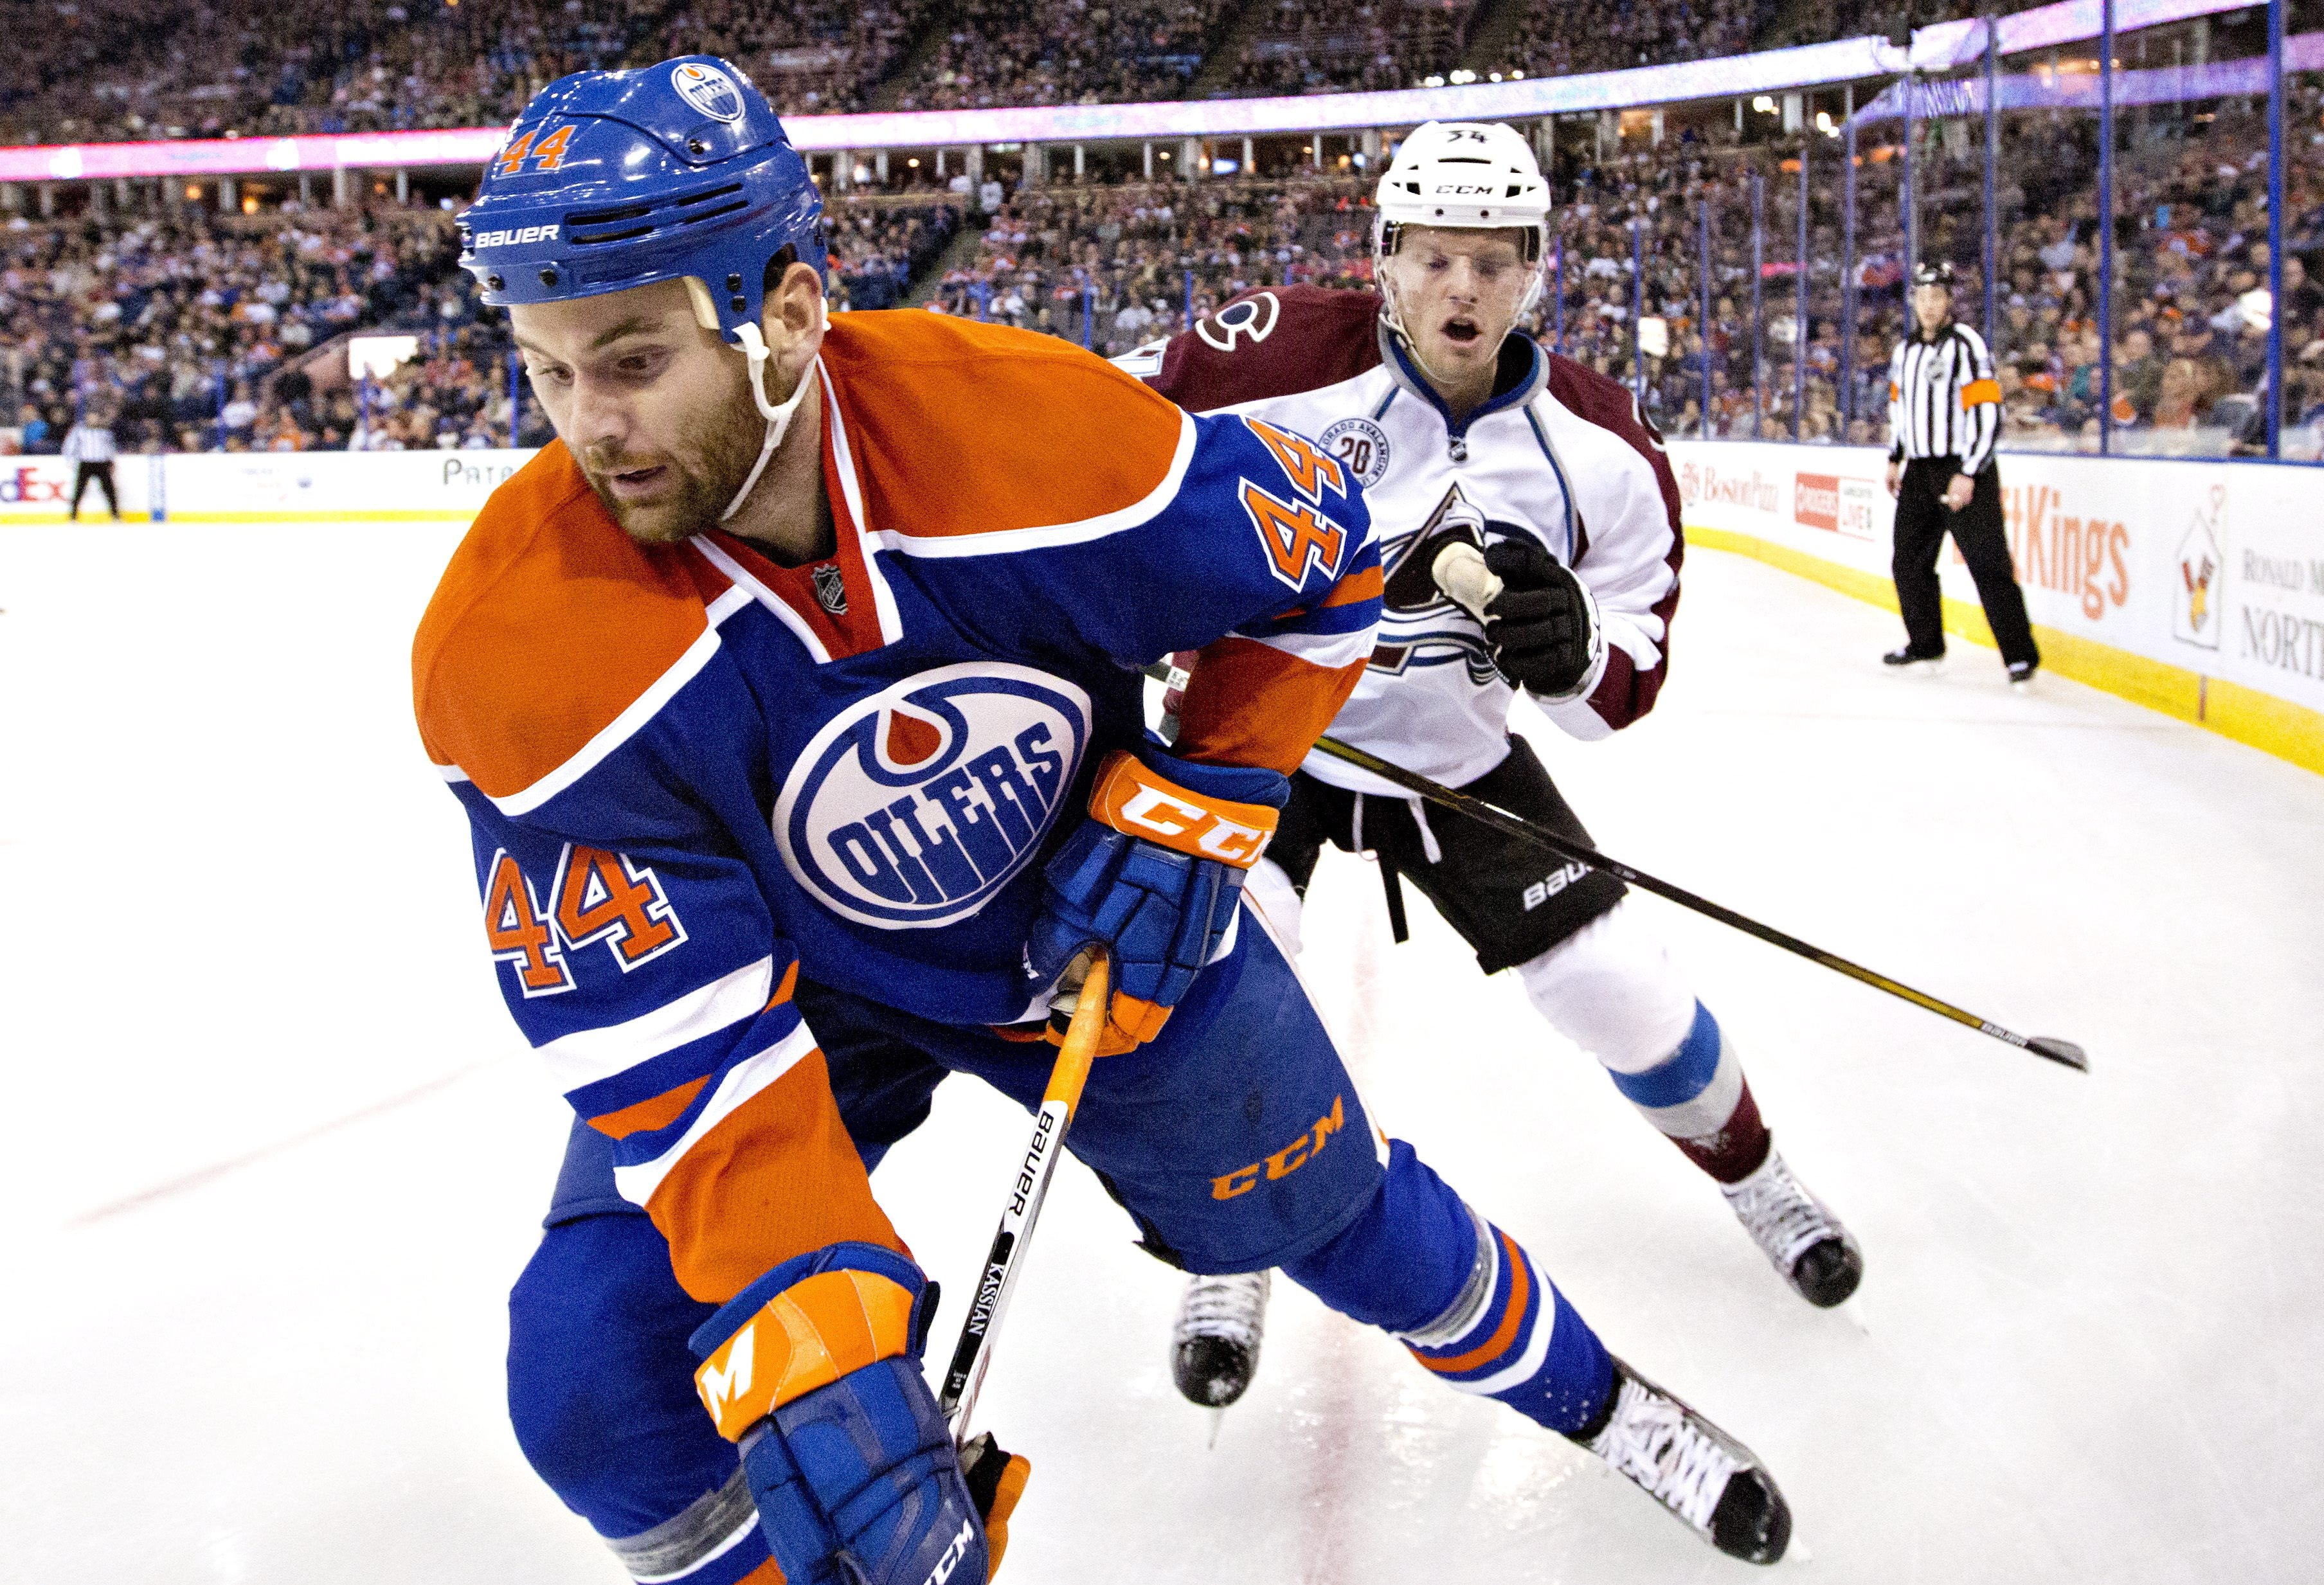 Colorado Avalanche's Carl Soderberg (34) battles in the corner with Edmonton Oilers' Zack Kassian (44) during the second period of an NHL hockey game Saturday, Feb. 20, 2016, in Edmonton, Alberta. (Jason Franson/The Canadian Press via AP)